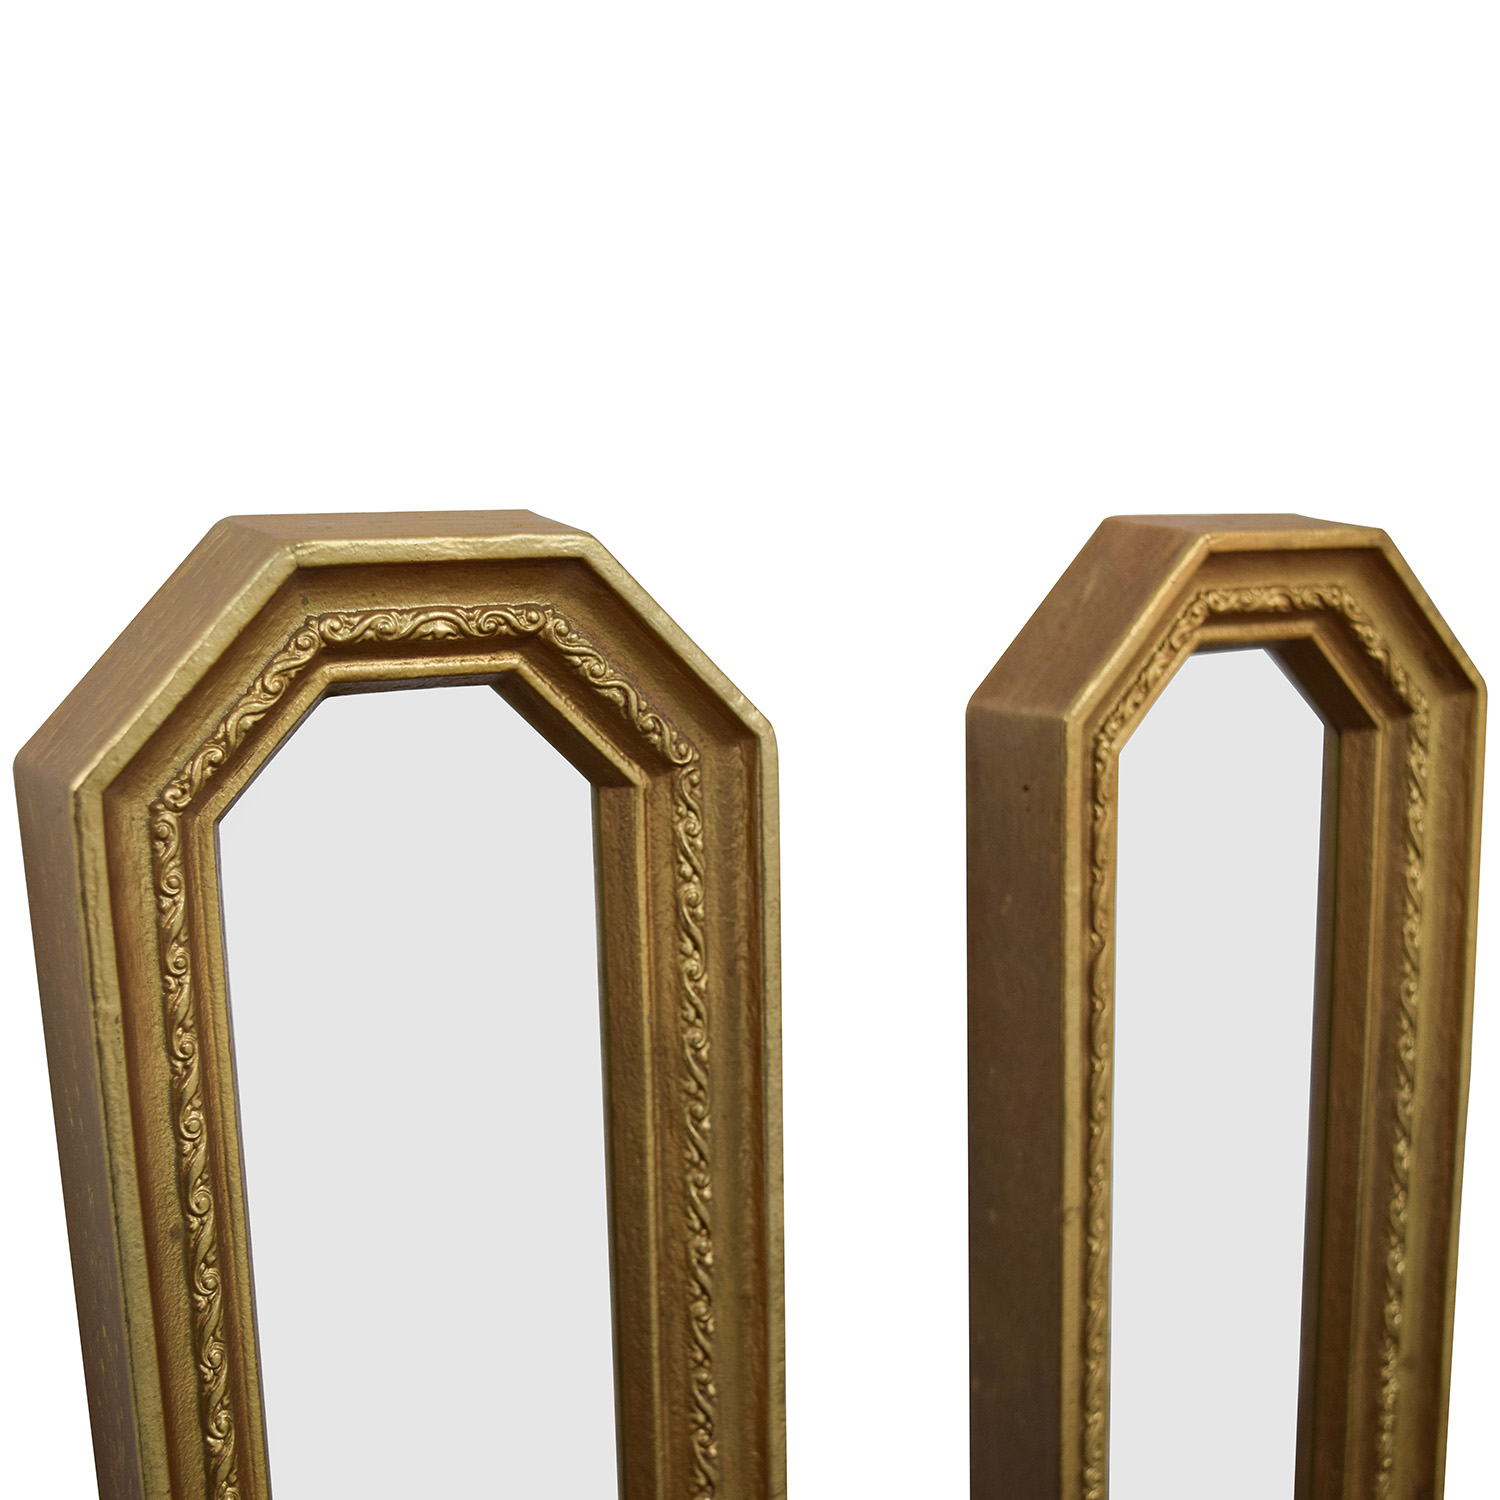 Gold Frame Oblong Mirrors Decor